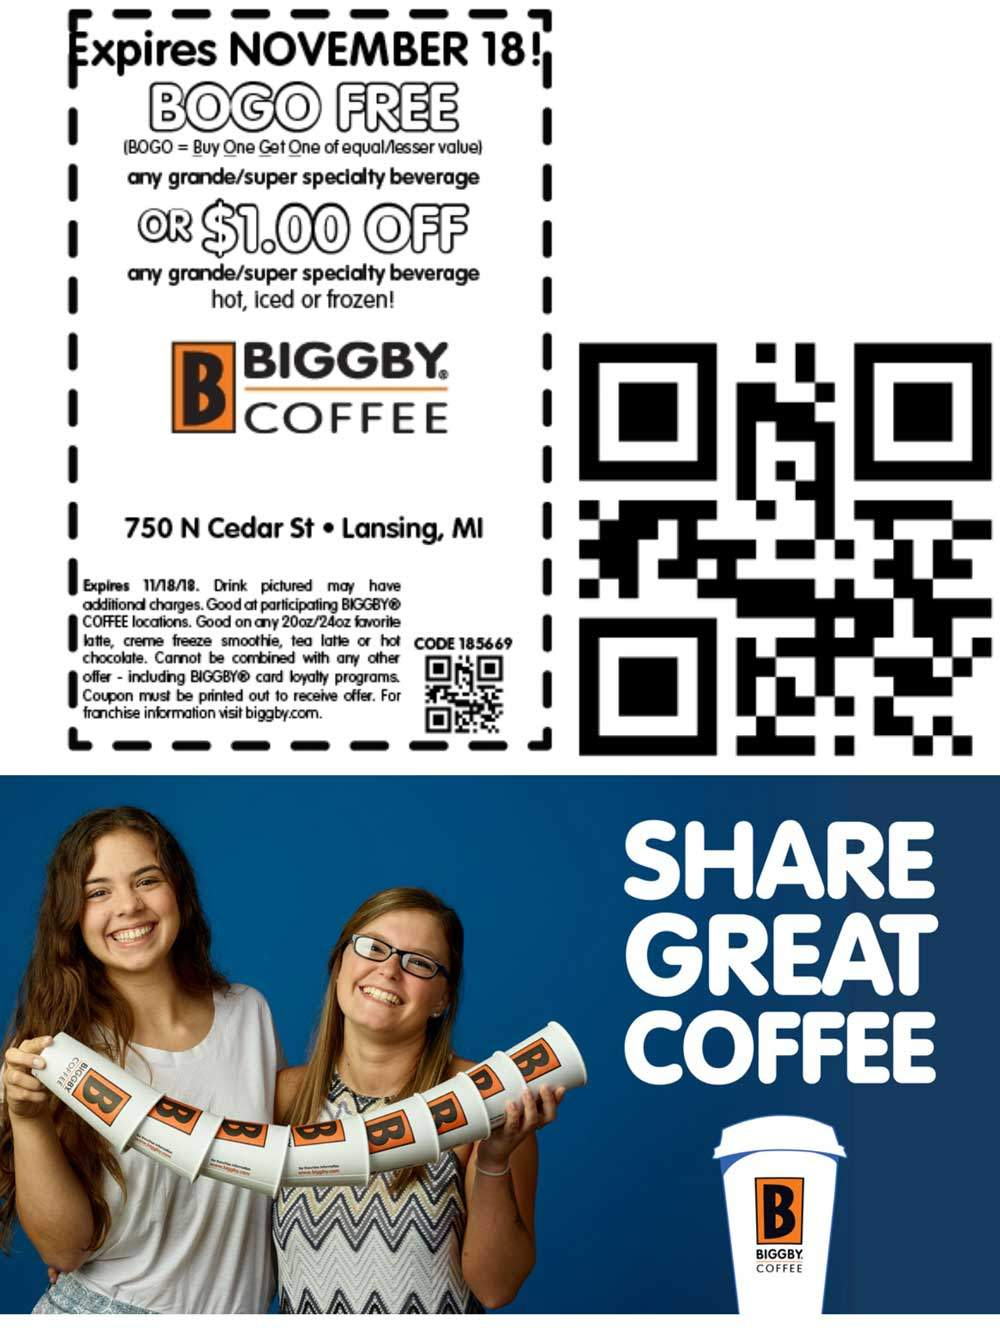 Biggby Coffee Coupon May 2019 Second coffee free at Biggby Coffee